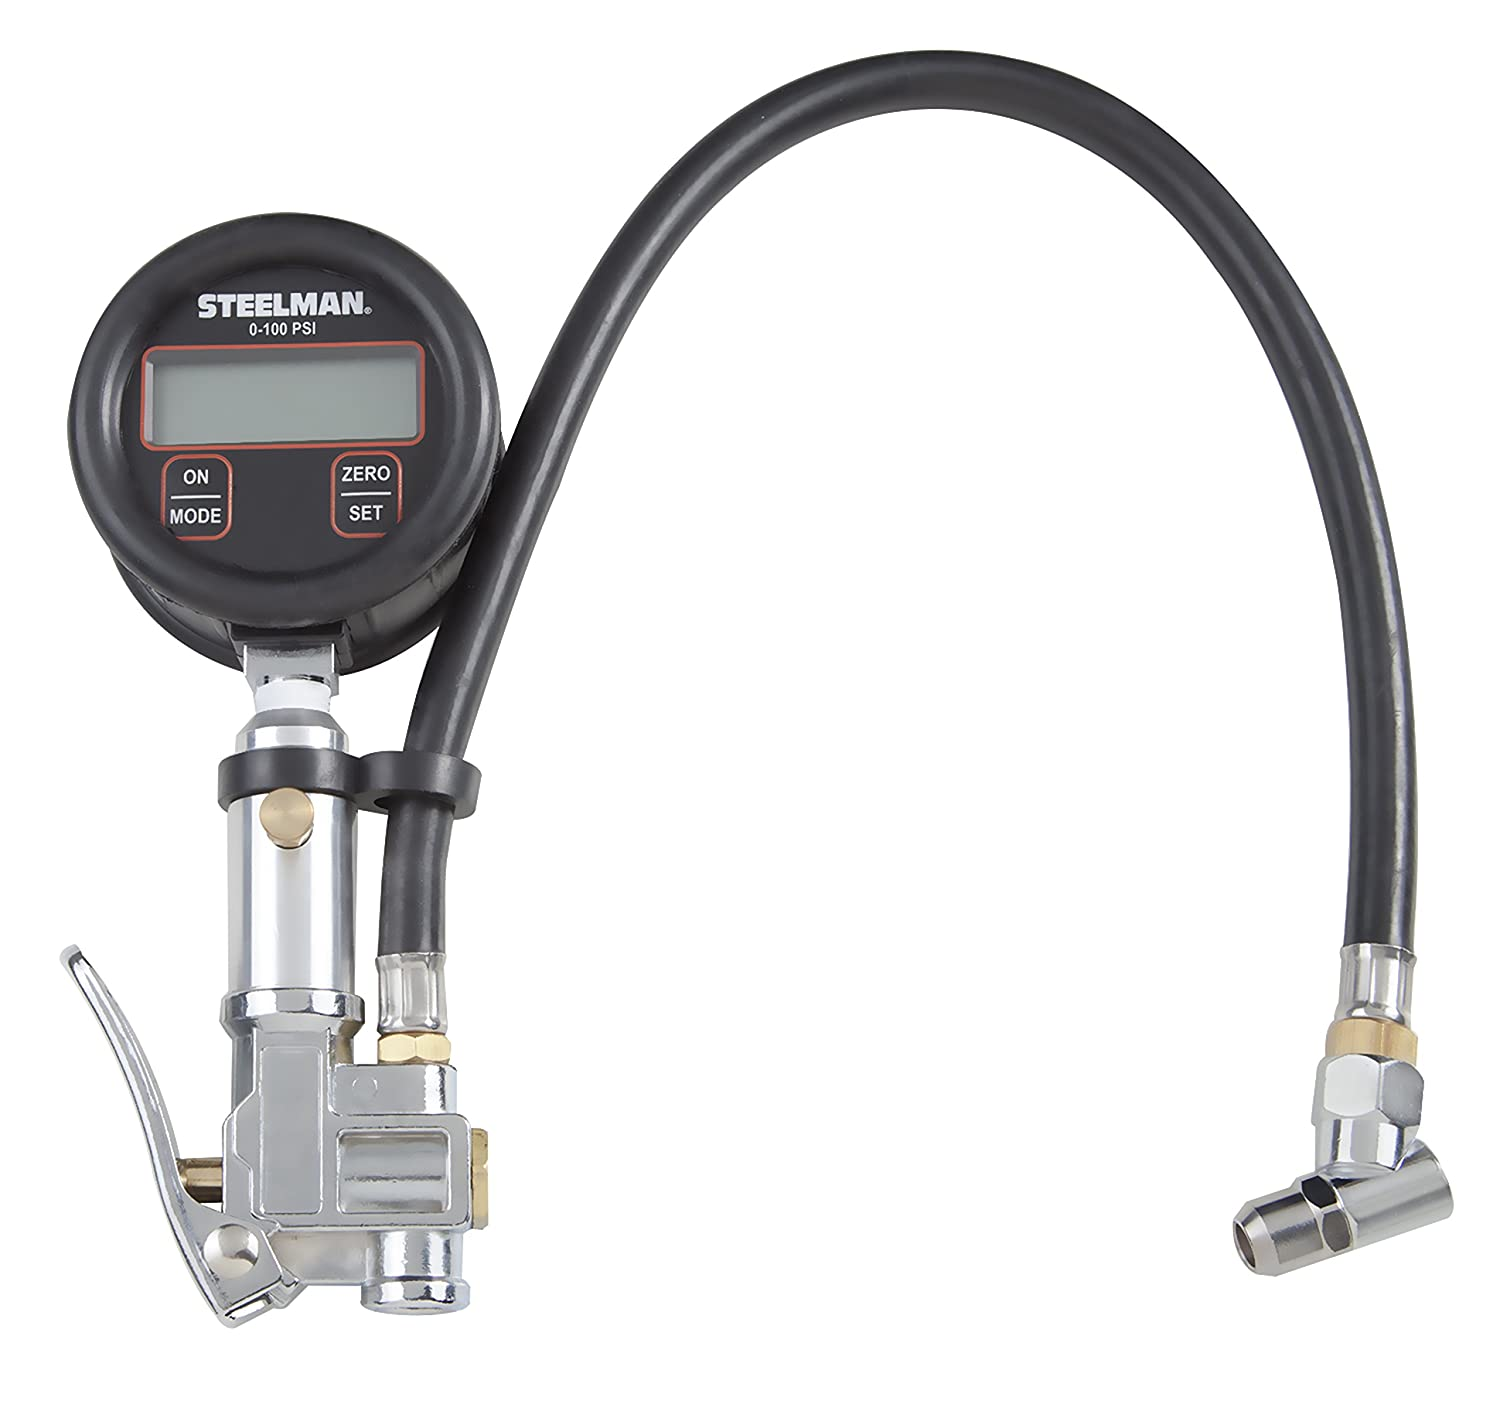 Top 10 Best Tire Inflators With Gauges Reviews in 2020 8